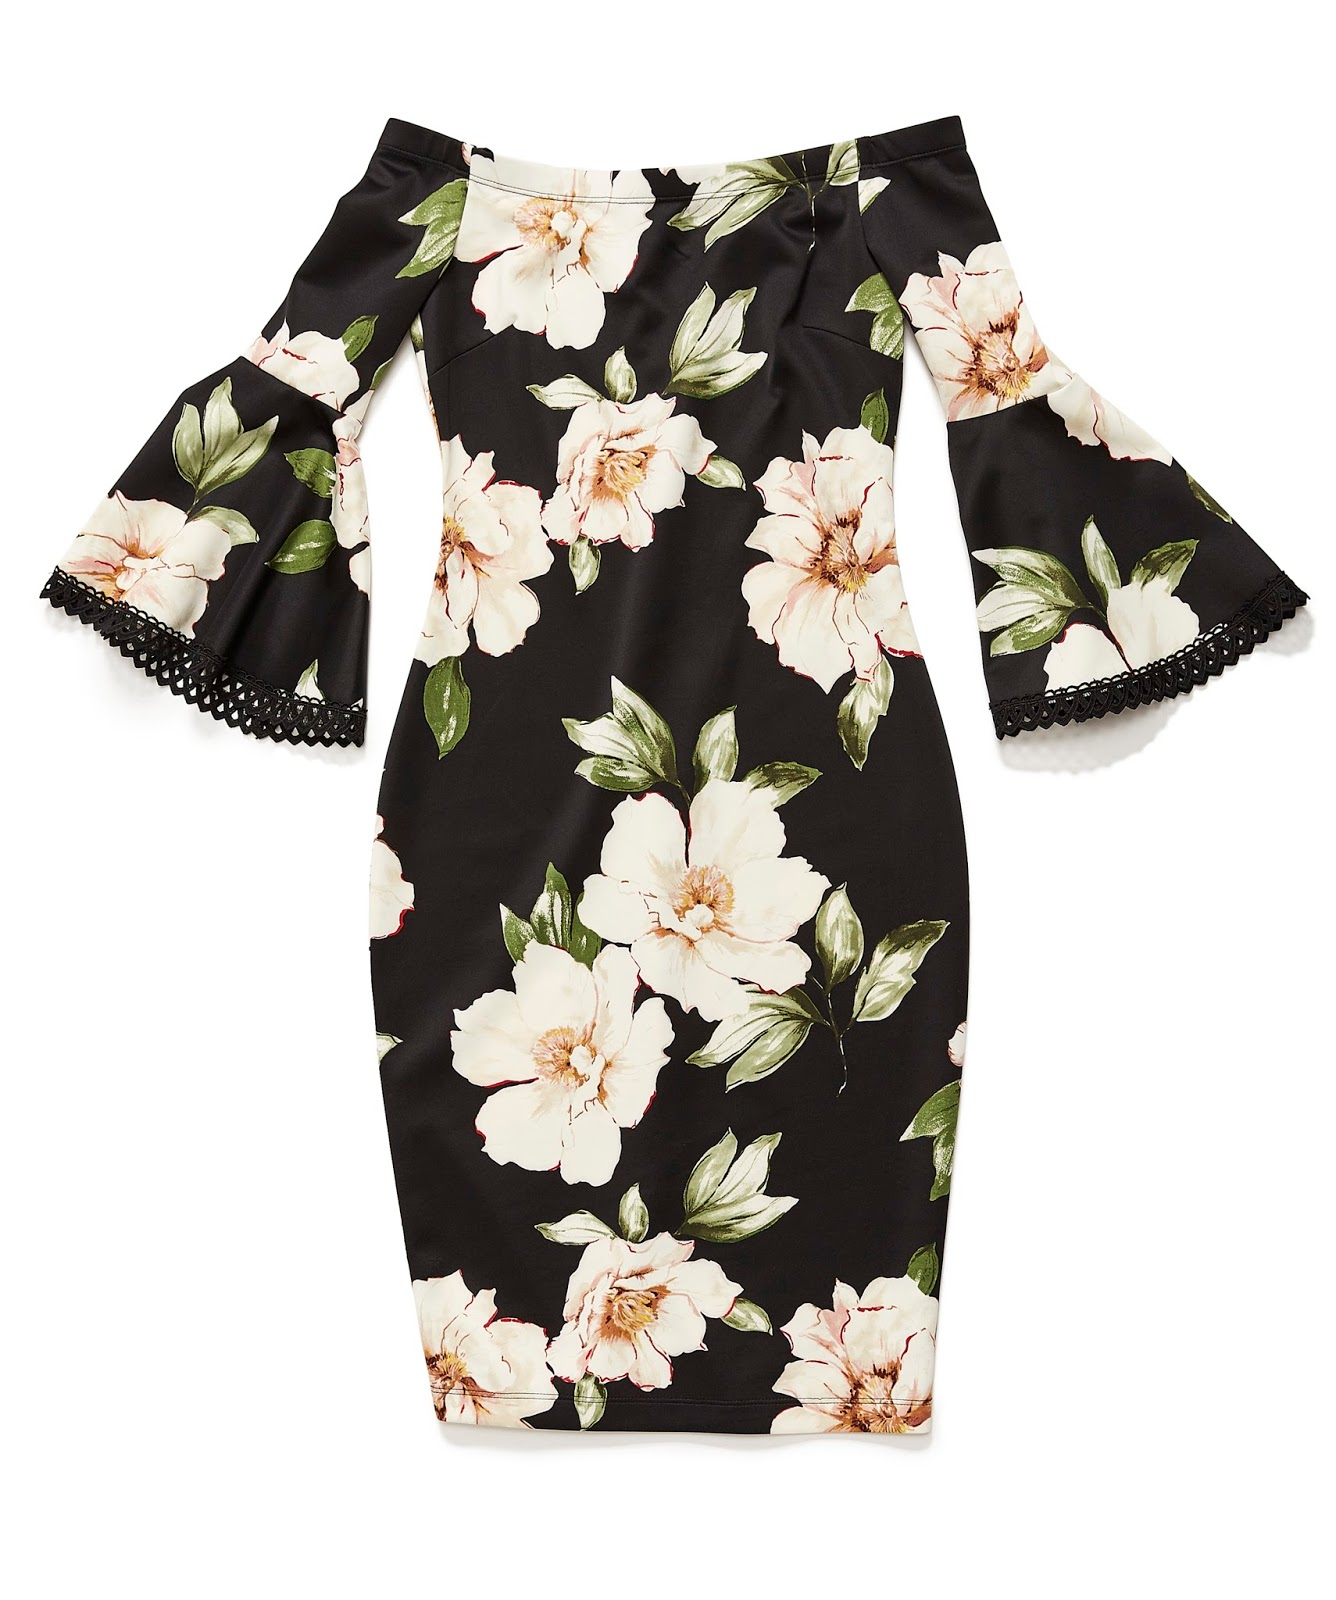 Premier Amour Elbow Bell Sleeve Floral Sheath Dress